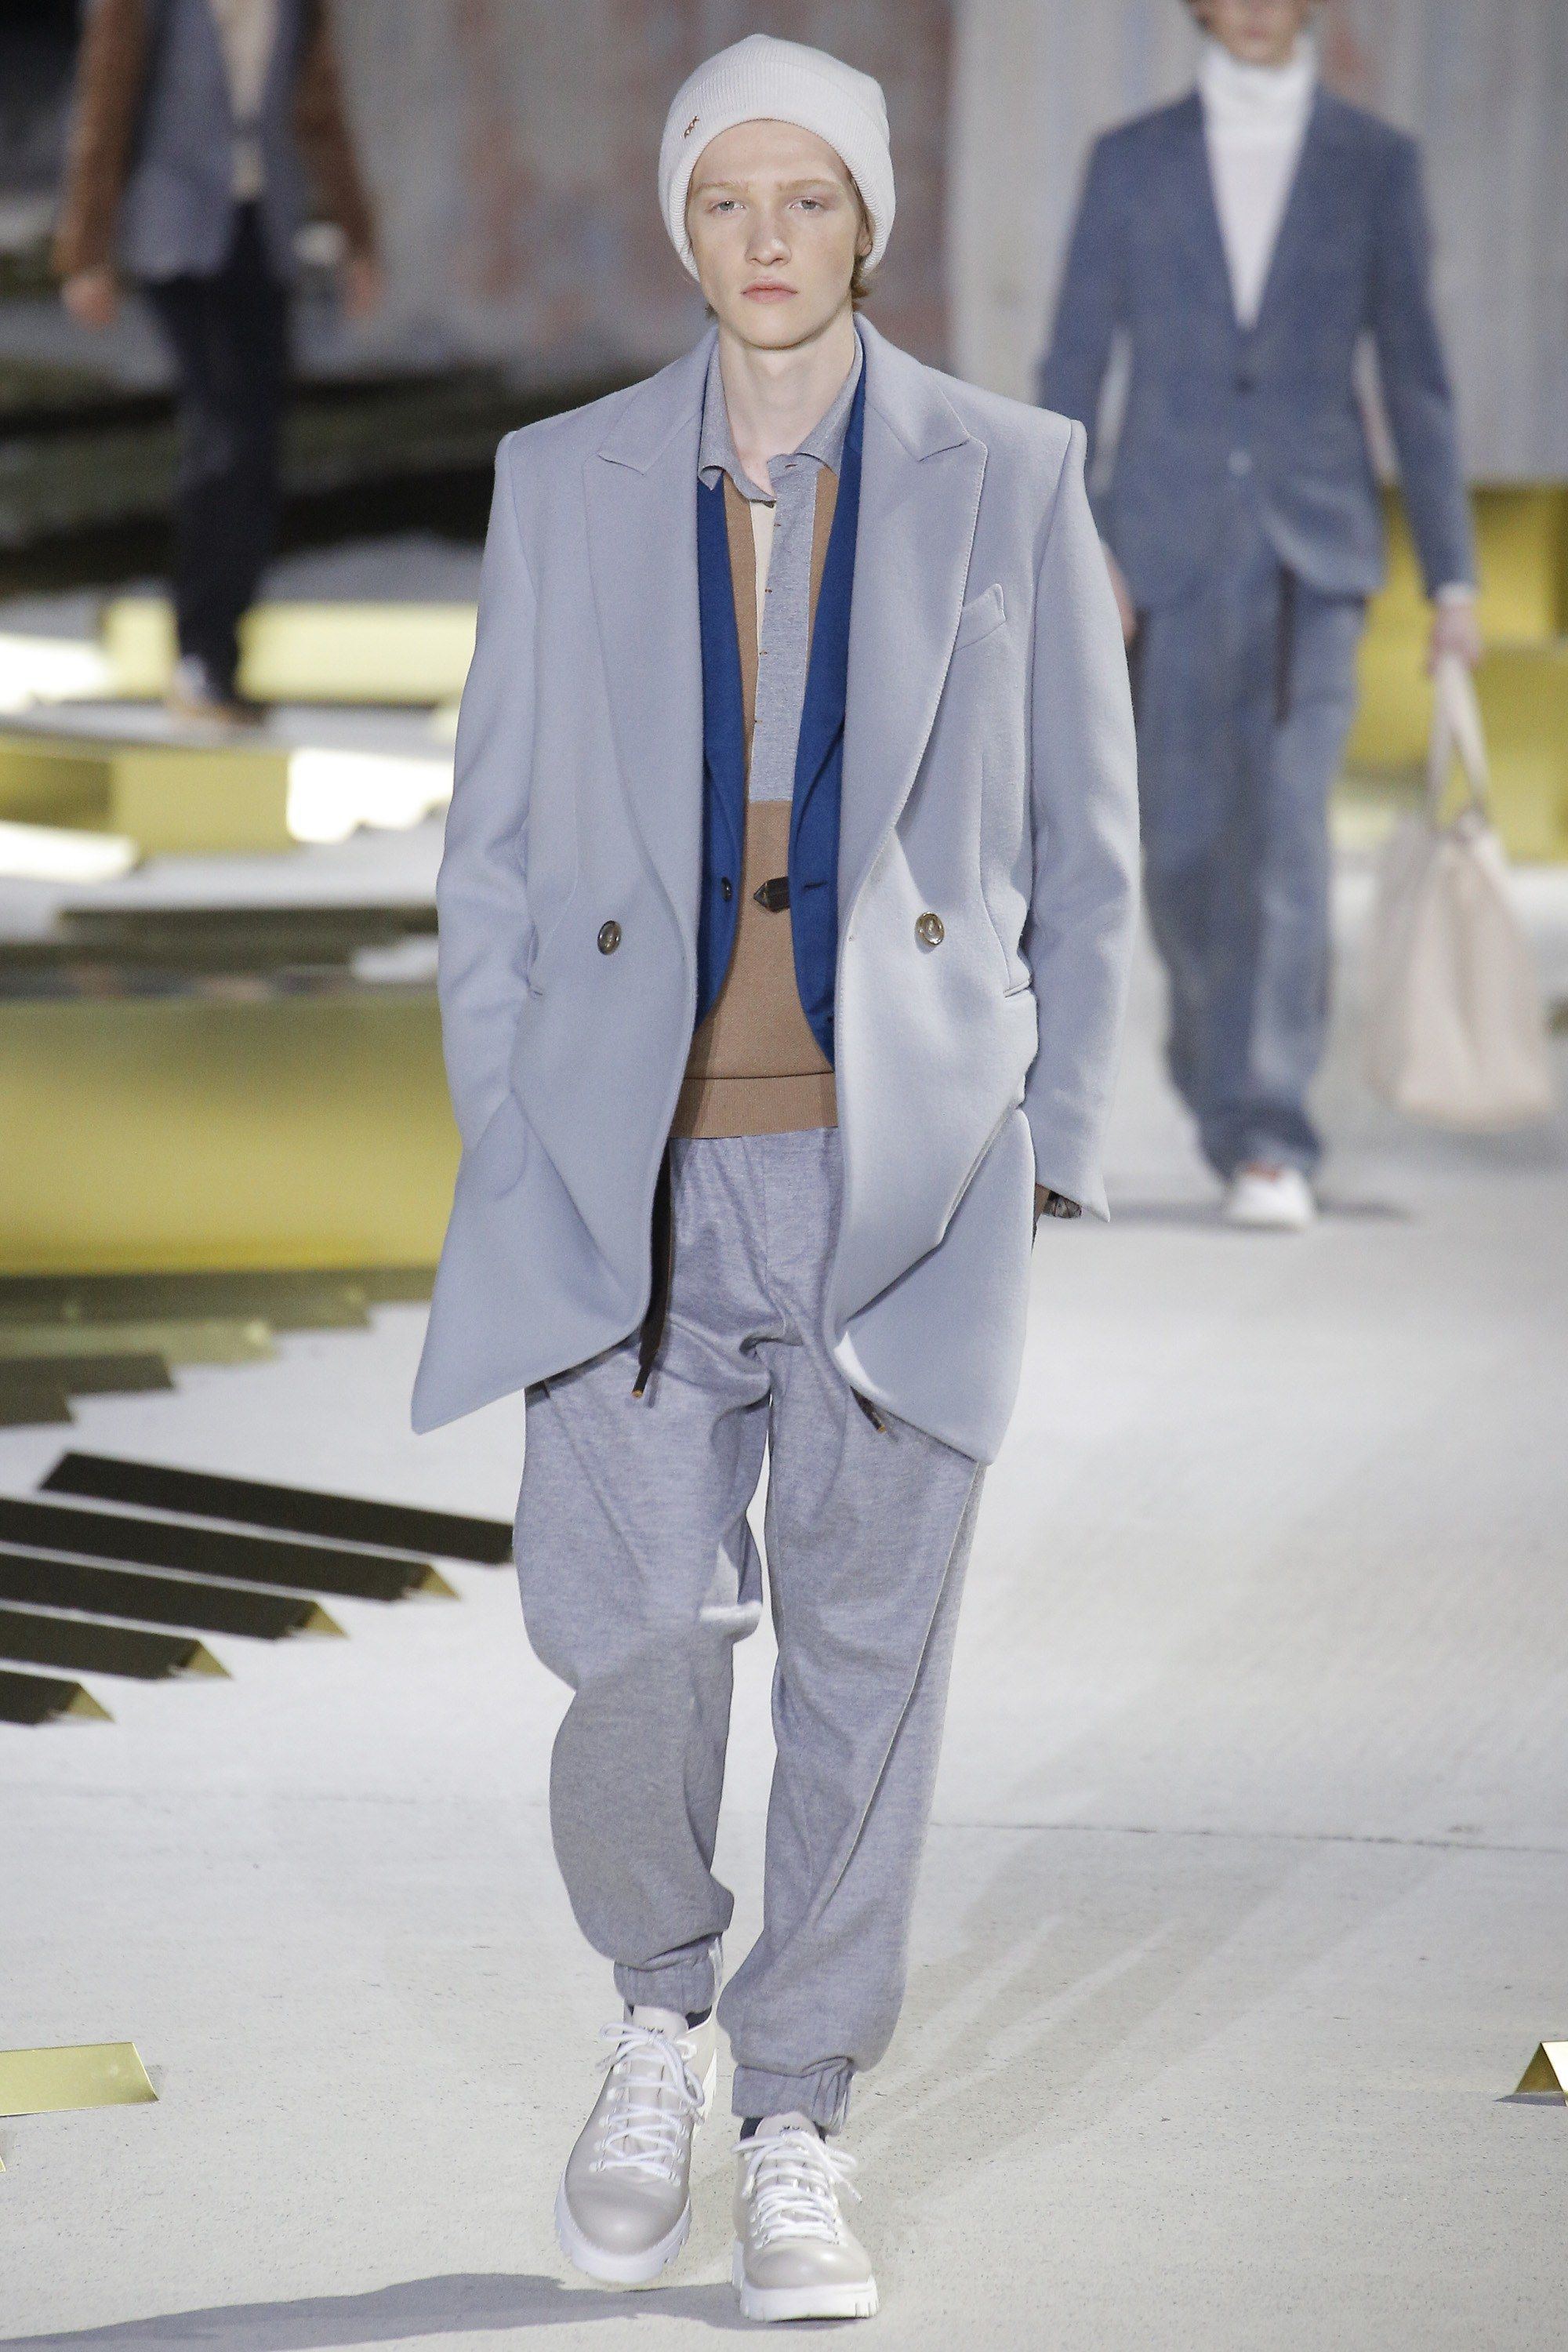 b5175372 Ermenegildo Zegna Fall 2017 Menswear Fashion Show in 2019 ...